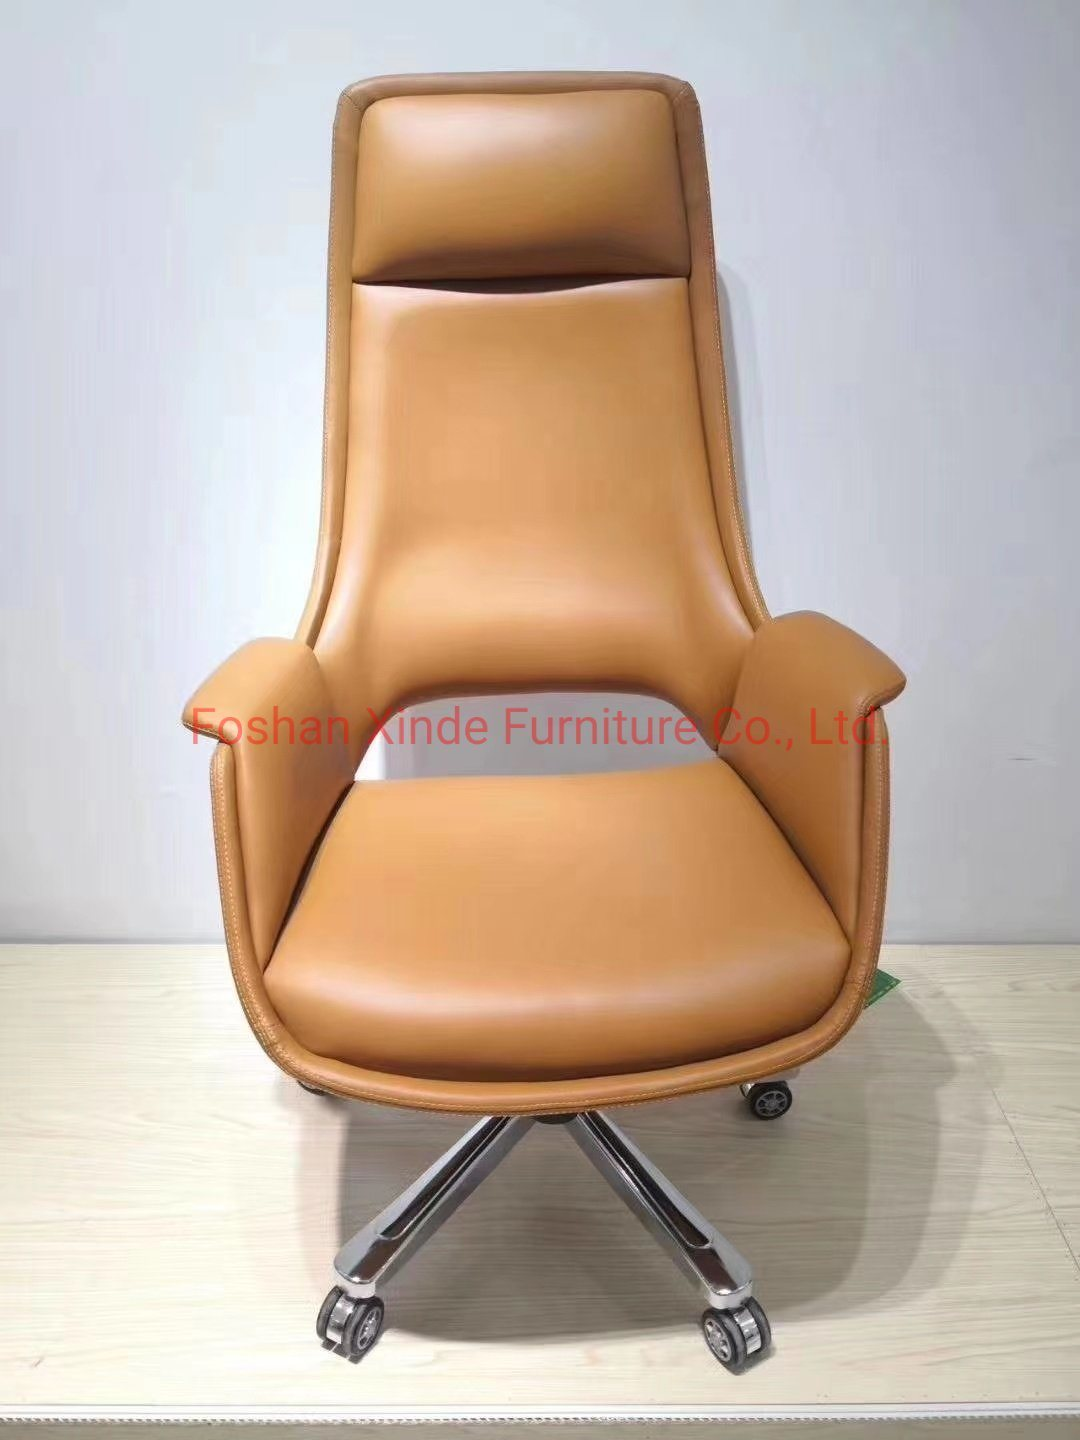 Picture of: China Modern Office Chair Orange White Red Color Office Chair Comfortable Pu Leather Office Chair China Office Chair Pu Chair